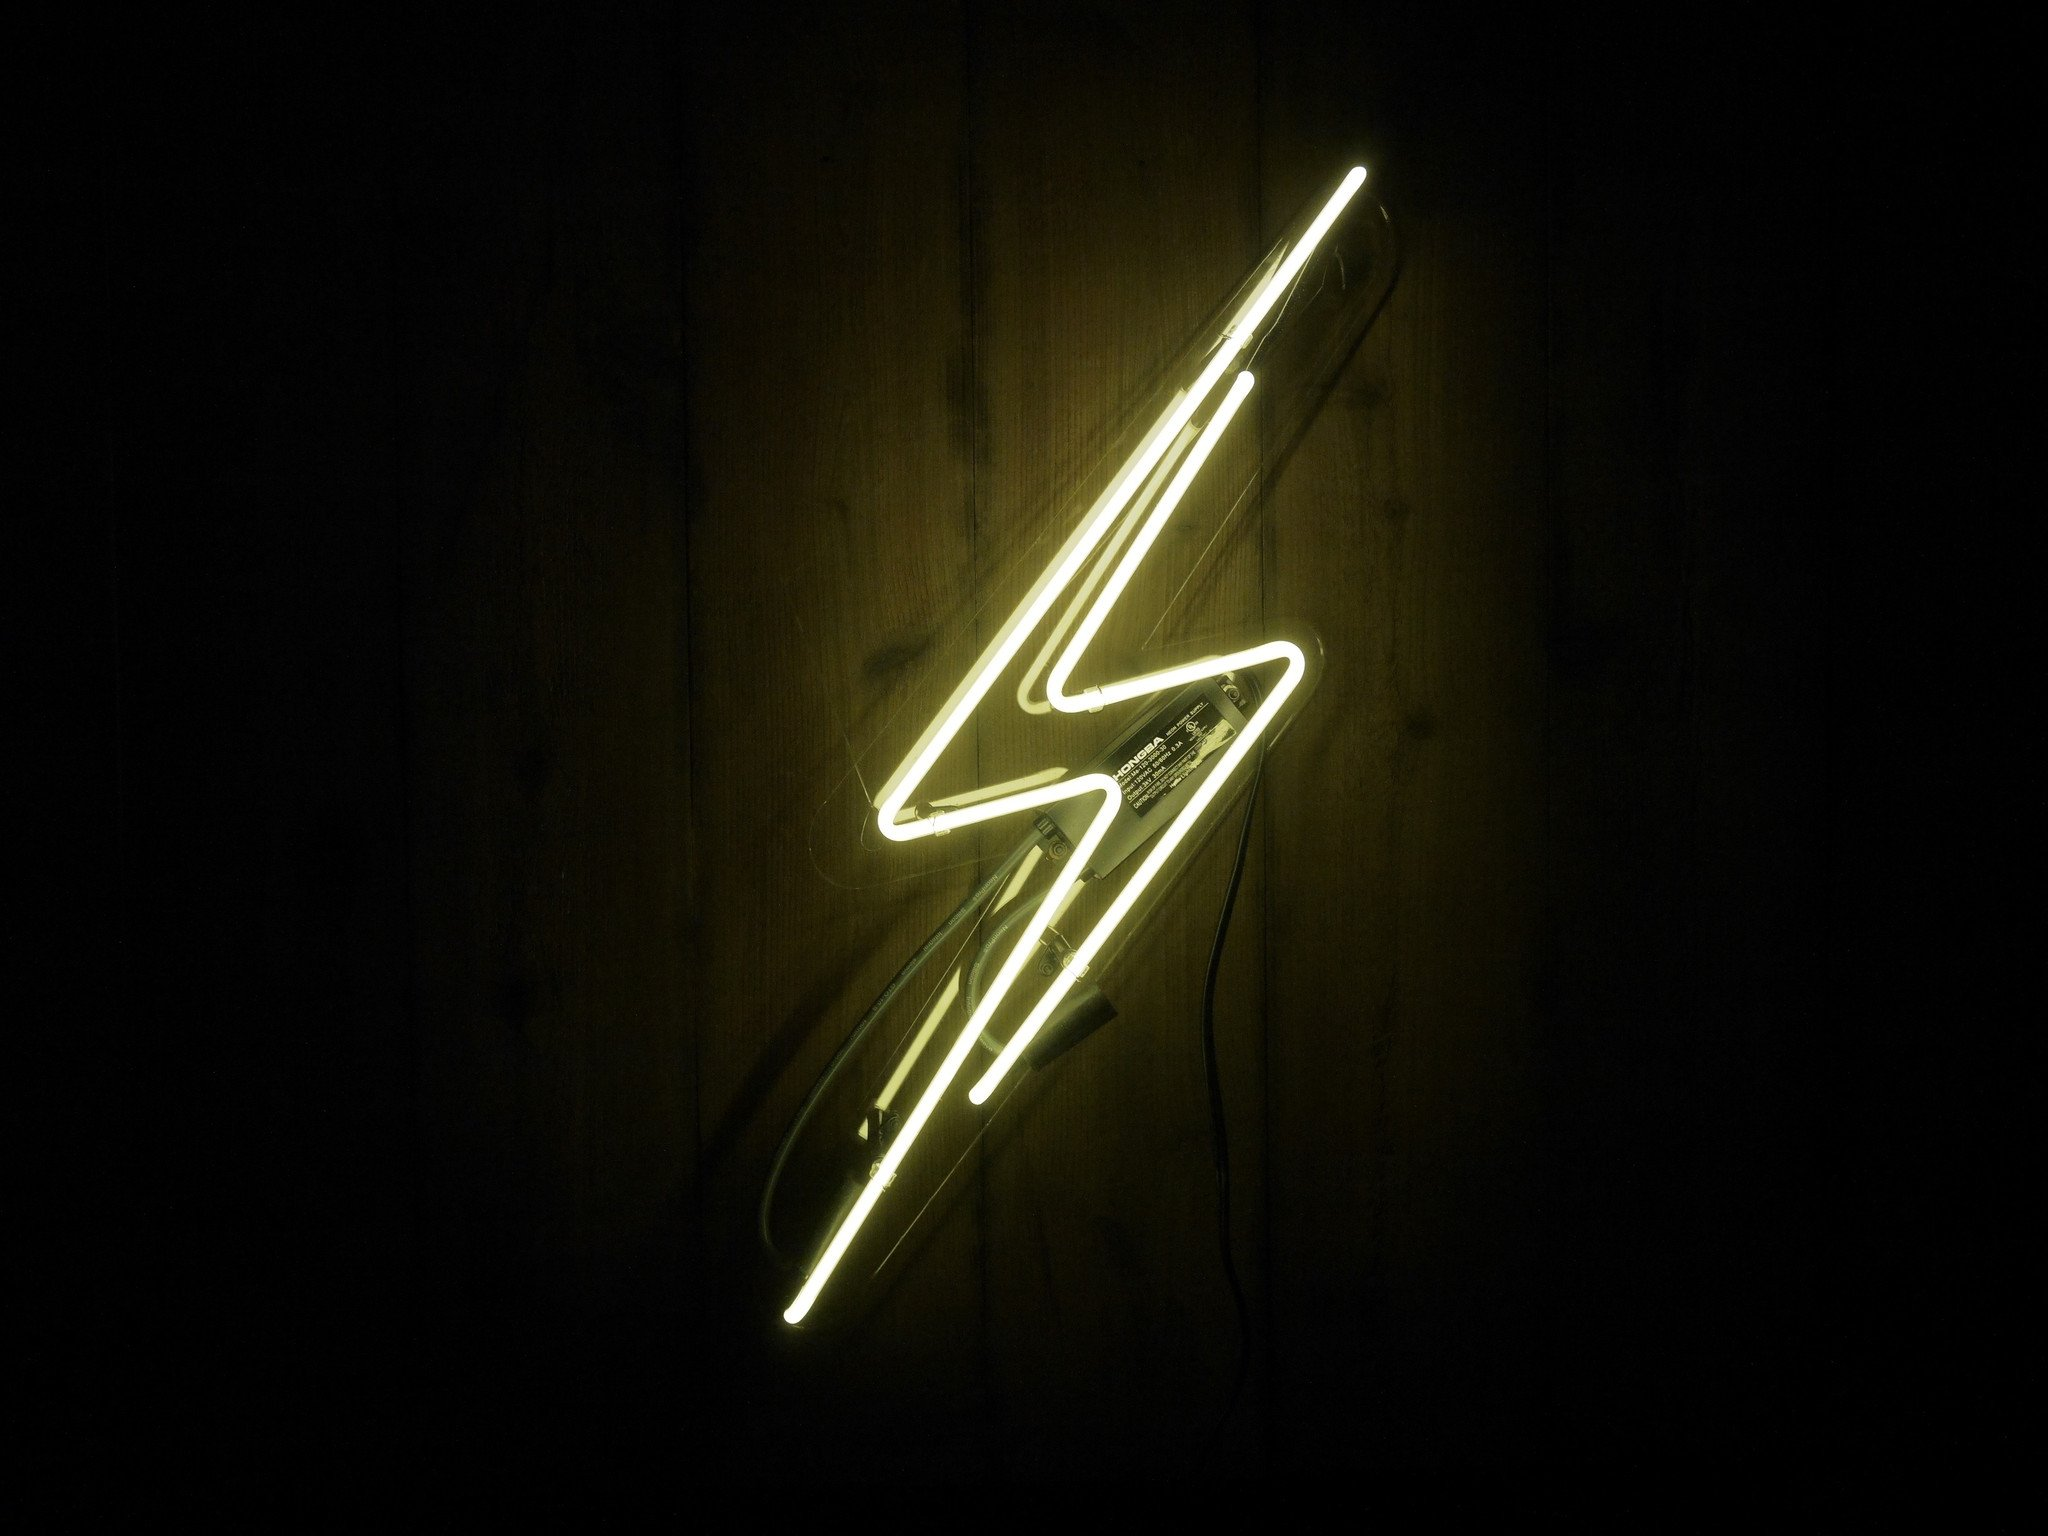 Lightning bolt png neon. Sign noble gas industries